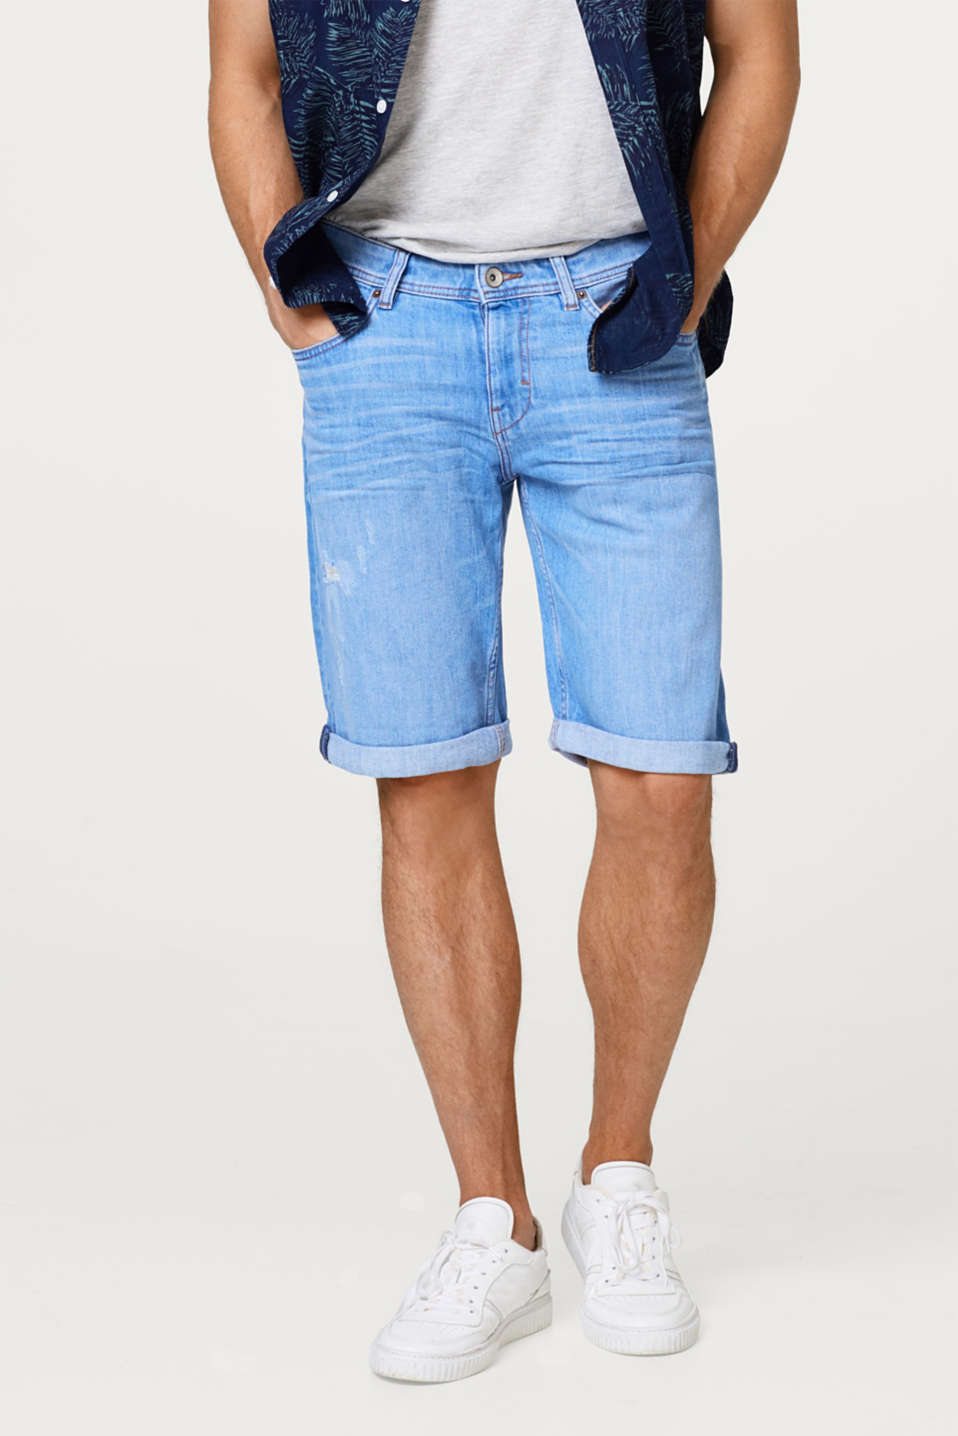 Esprit - Short en jean stretch au look usé